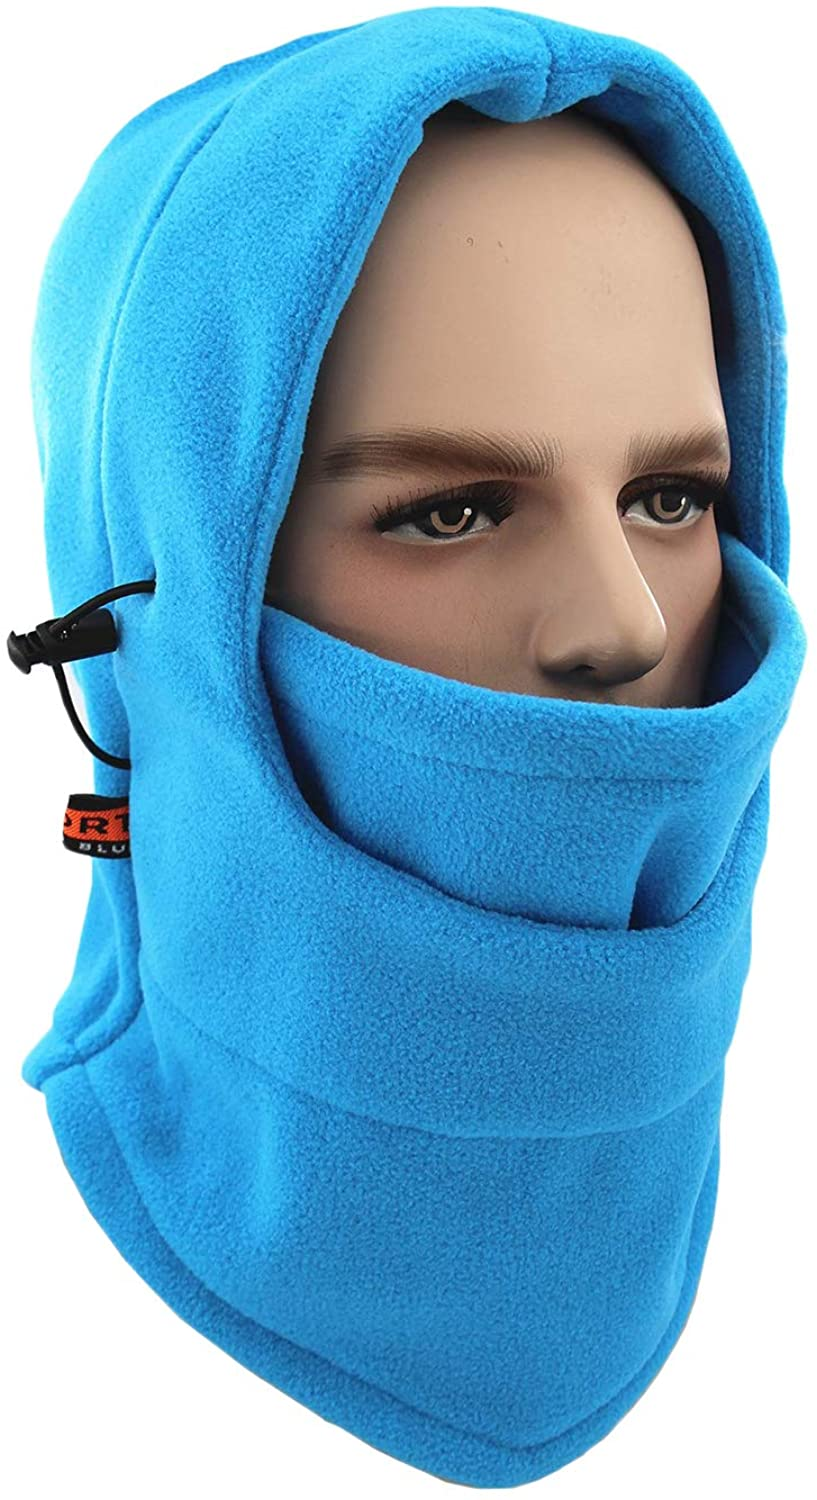 Balaclava Windproof Ski Face Mask Warm Fleece Ear-Flap Winter Hats Hoodie MK9